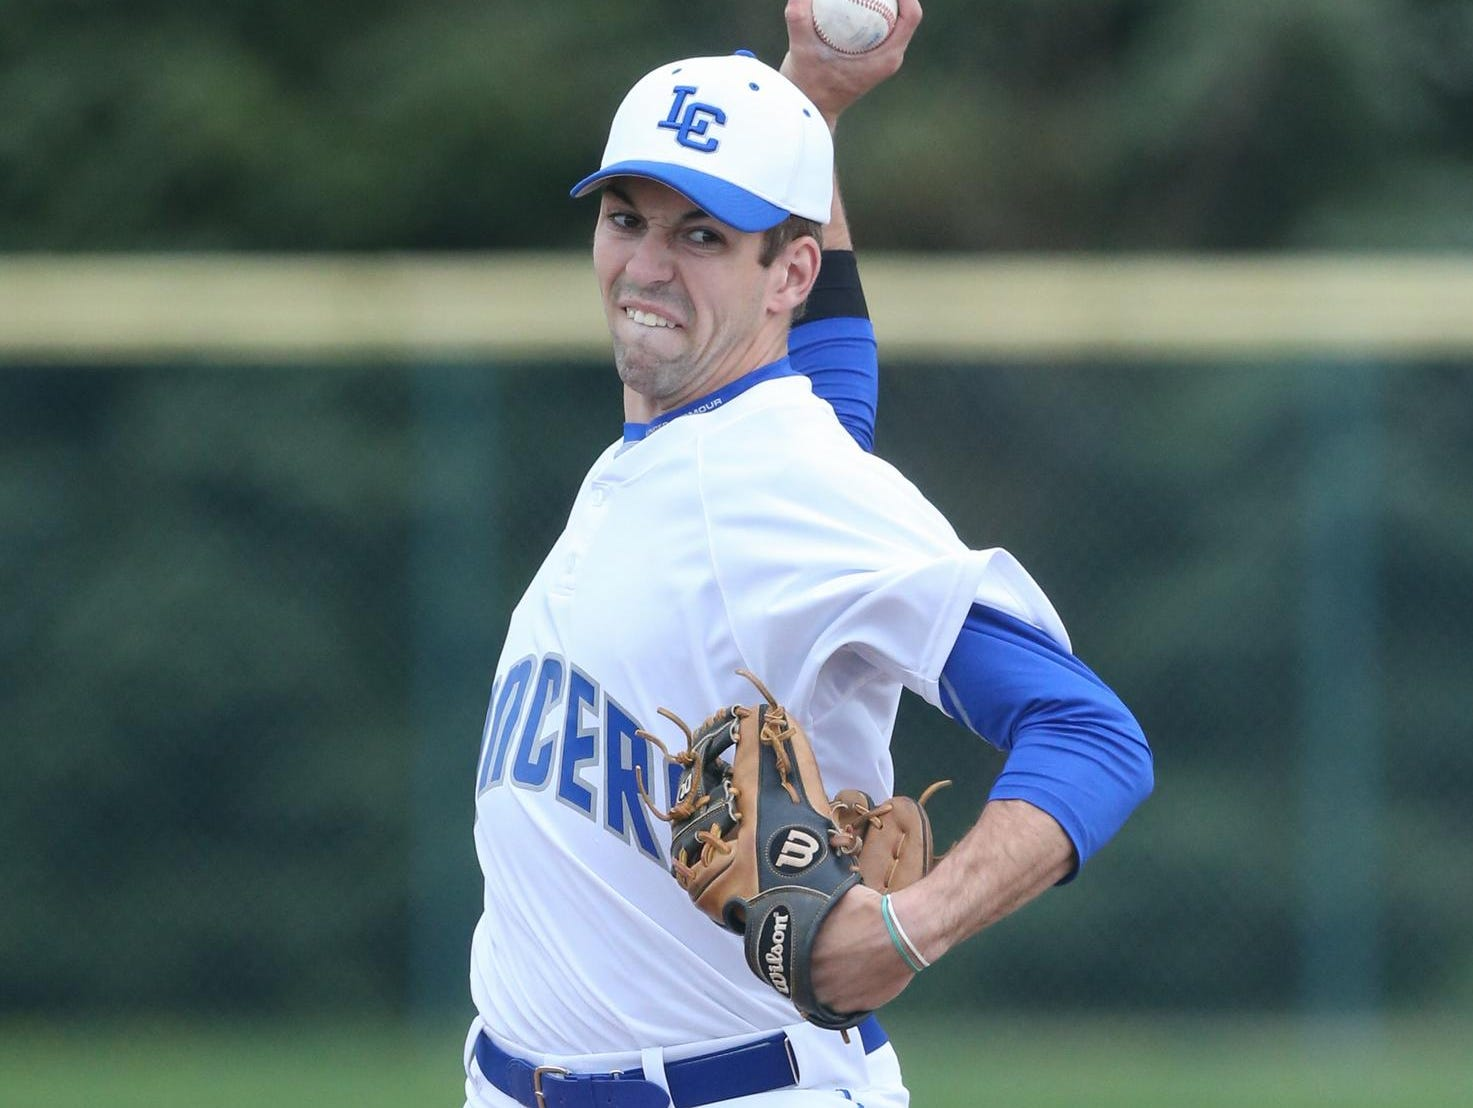 L'Anse Creuse High School's Jeremy Spezia pitches against visiting Romeo on Monday. Spezia struck out seven and gave up just two hits in the 6-0 victory. He also drove in two runs.